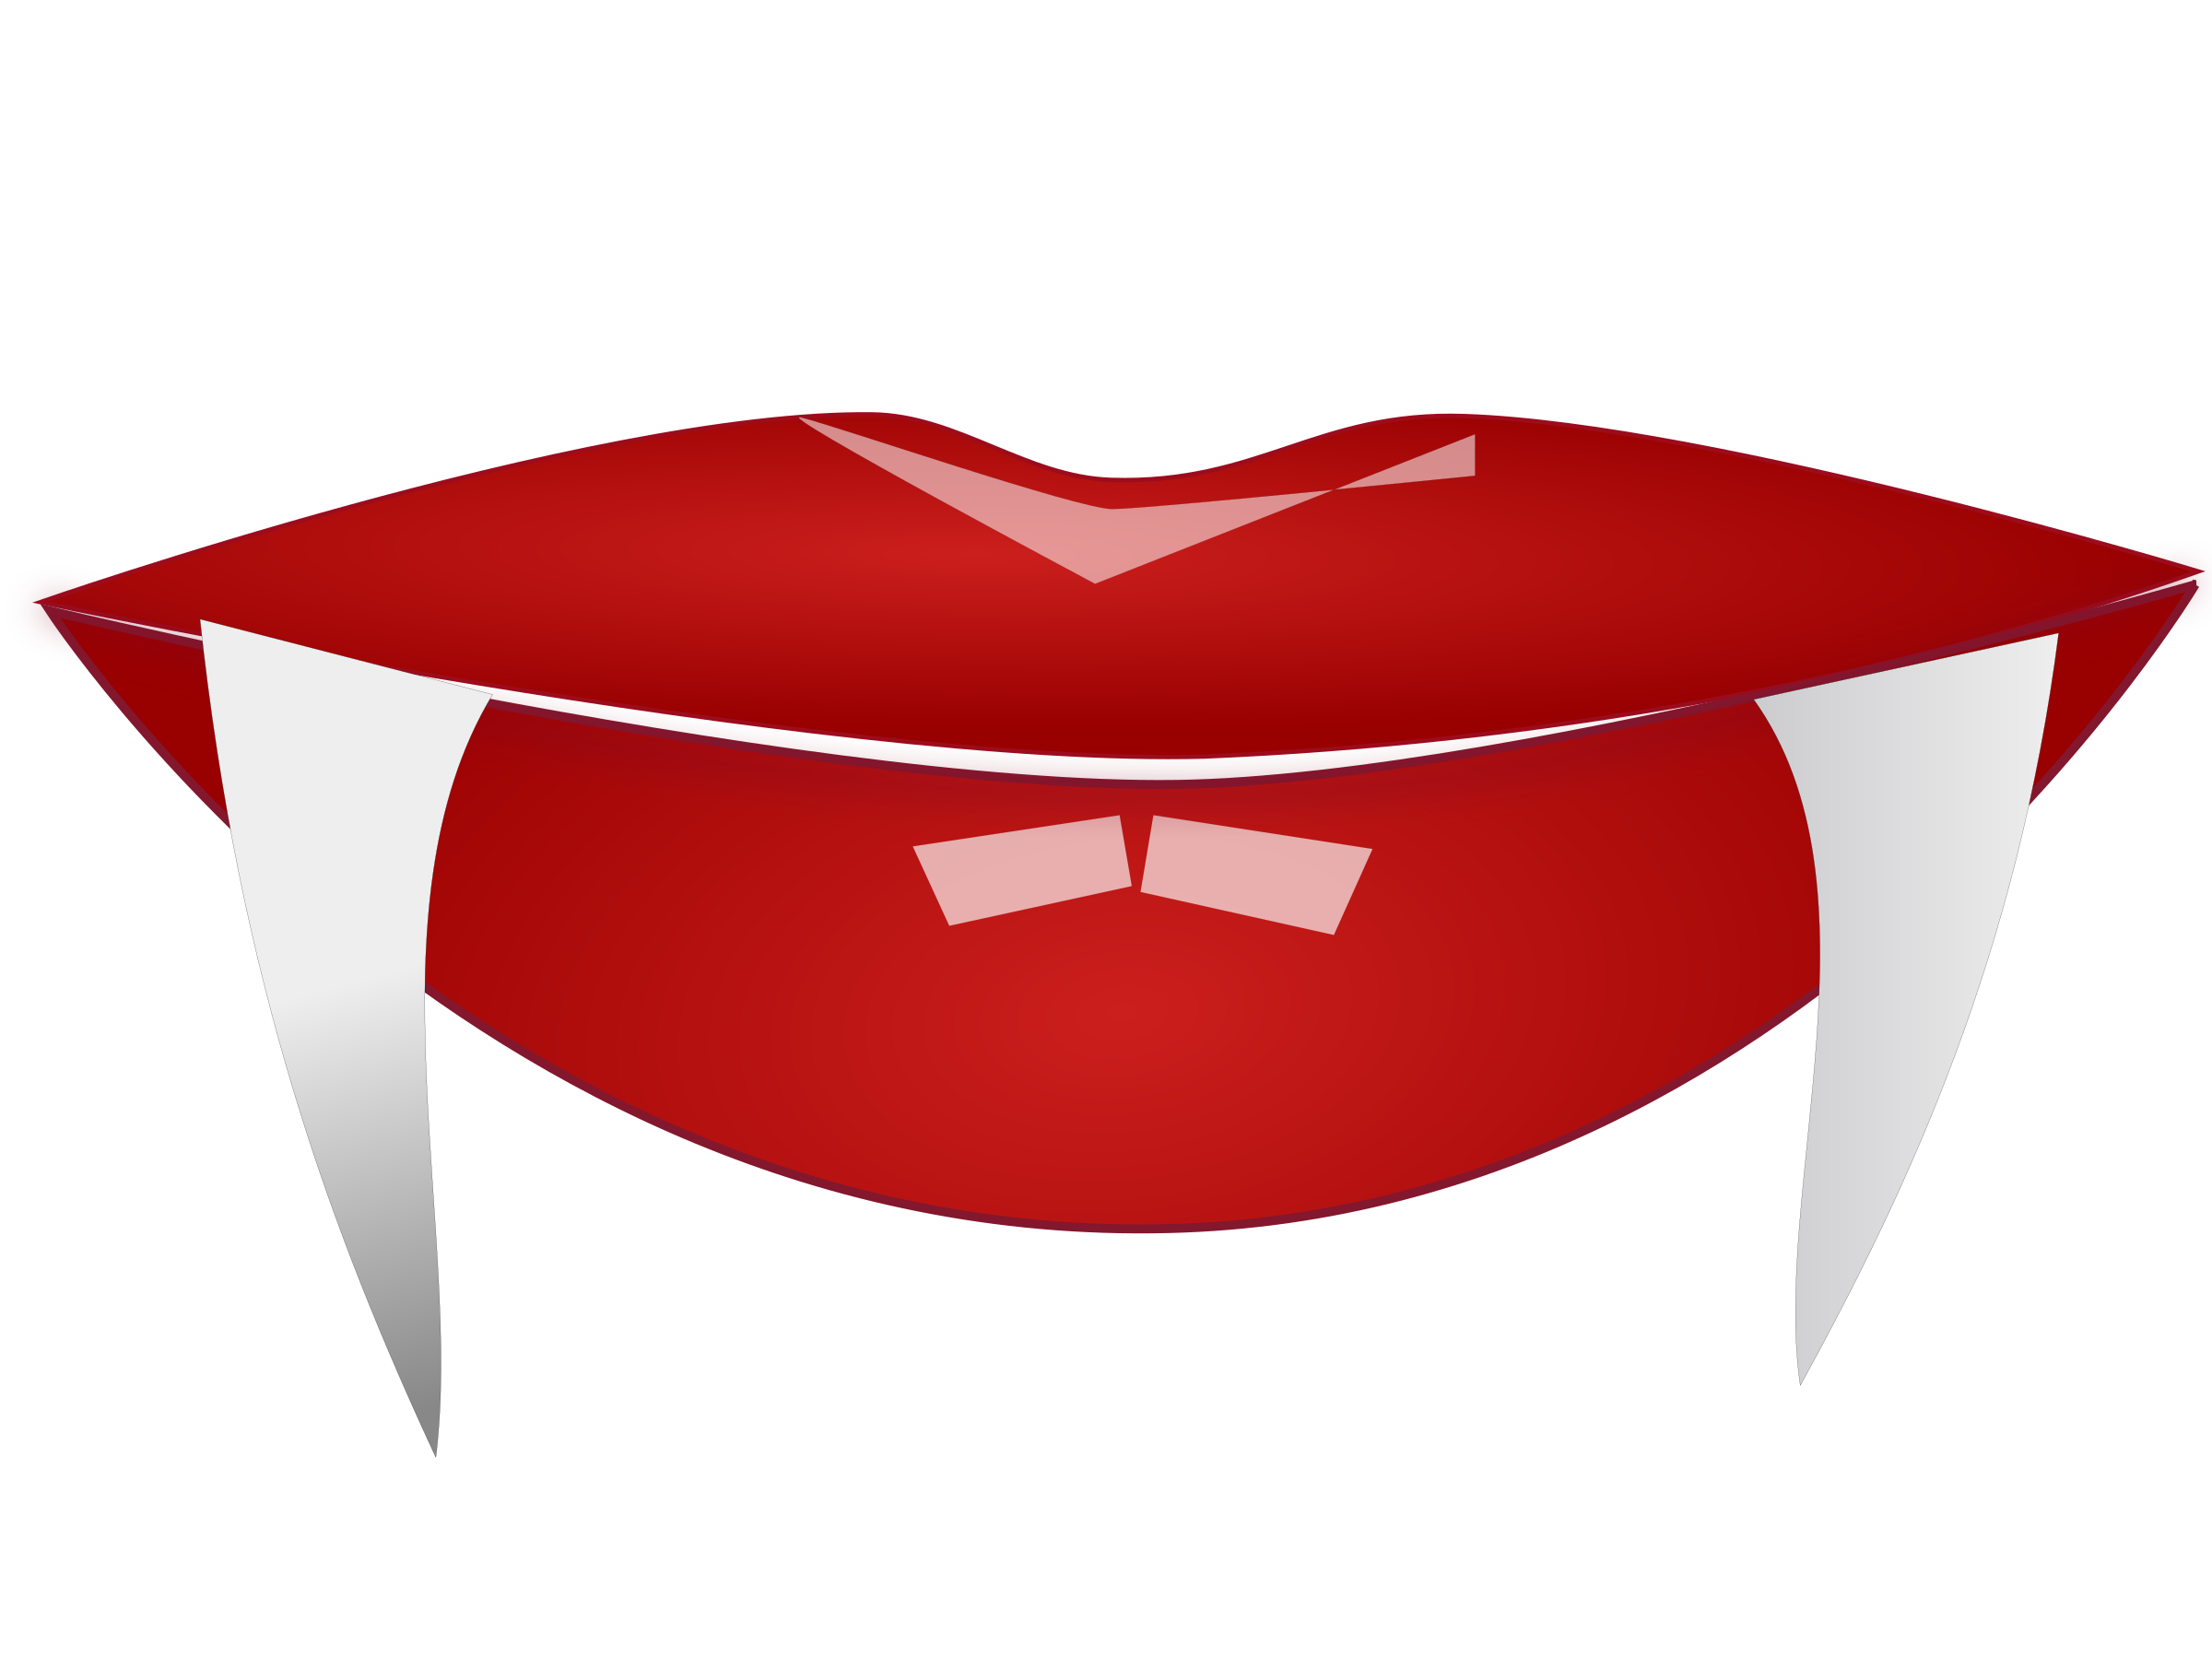 fangs png transparent